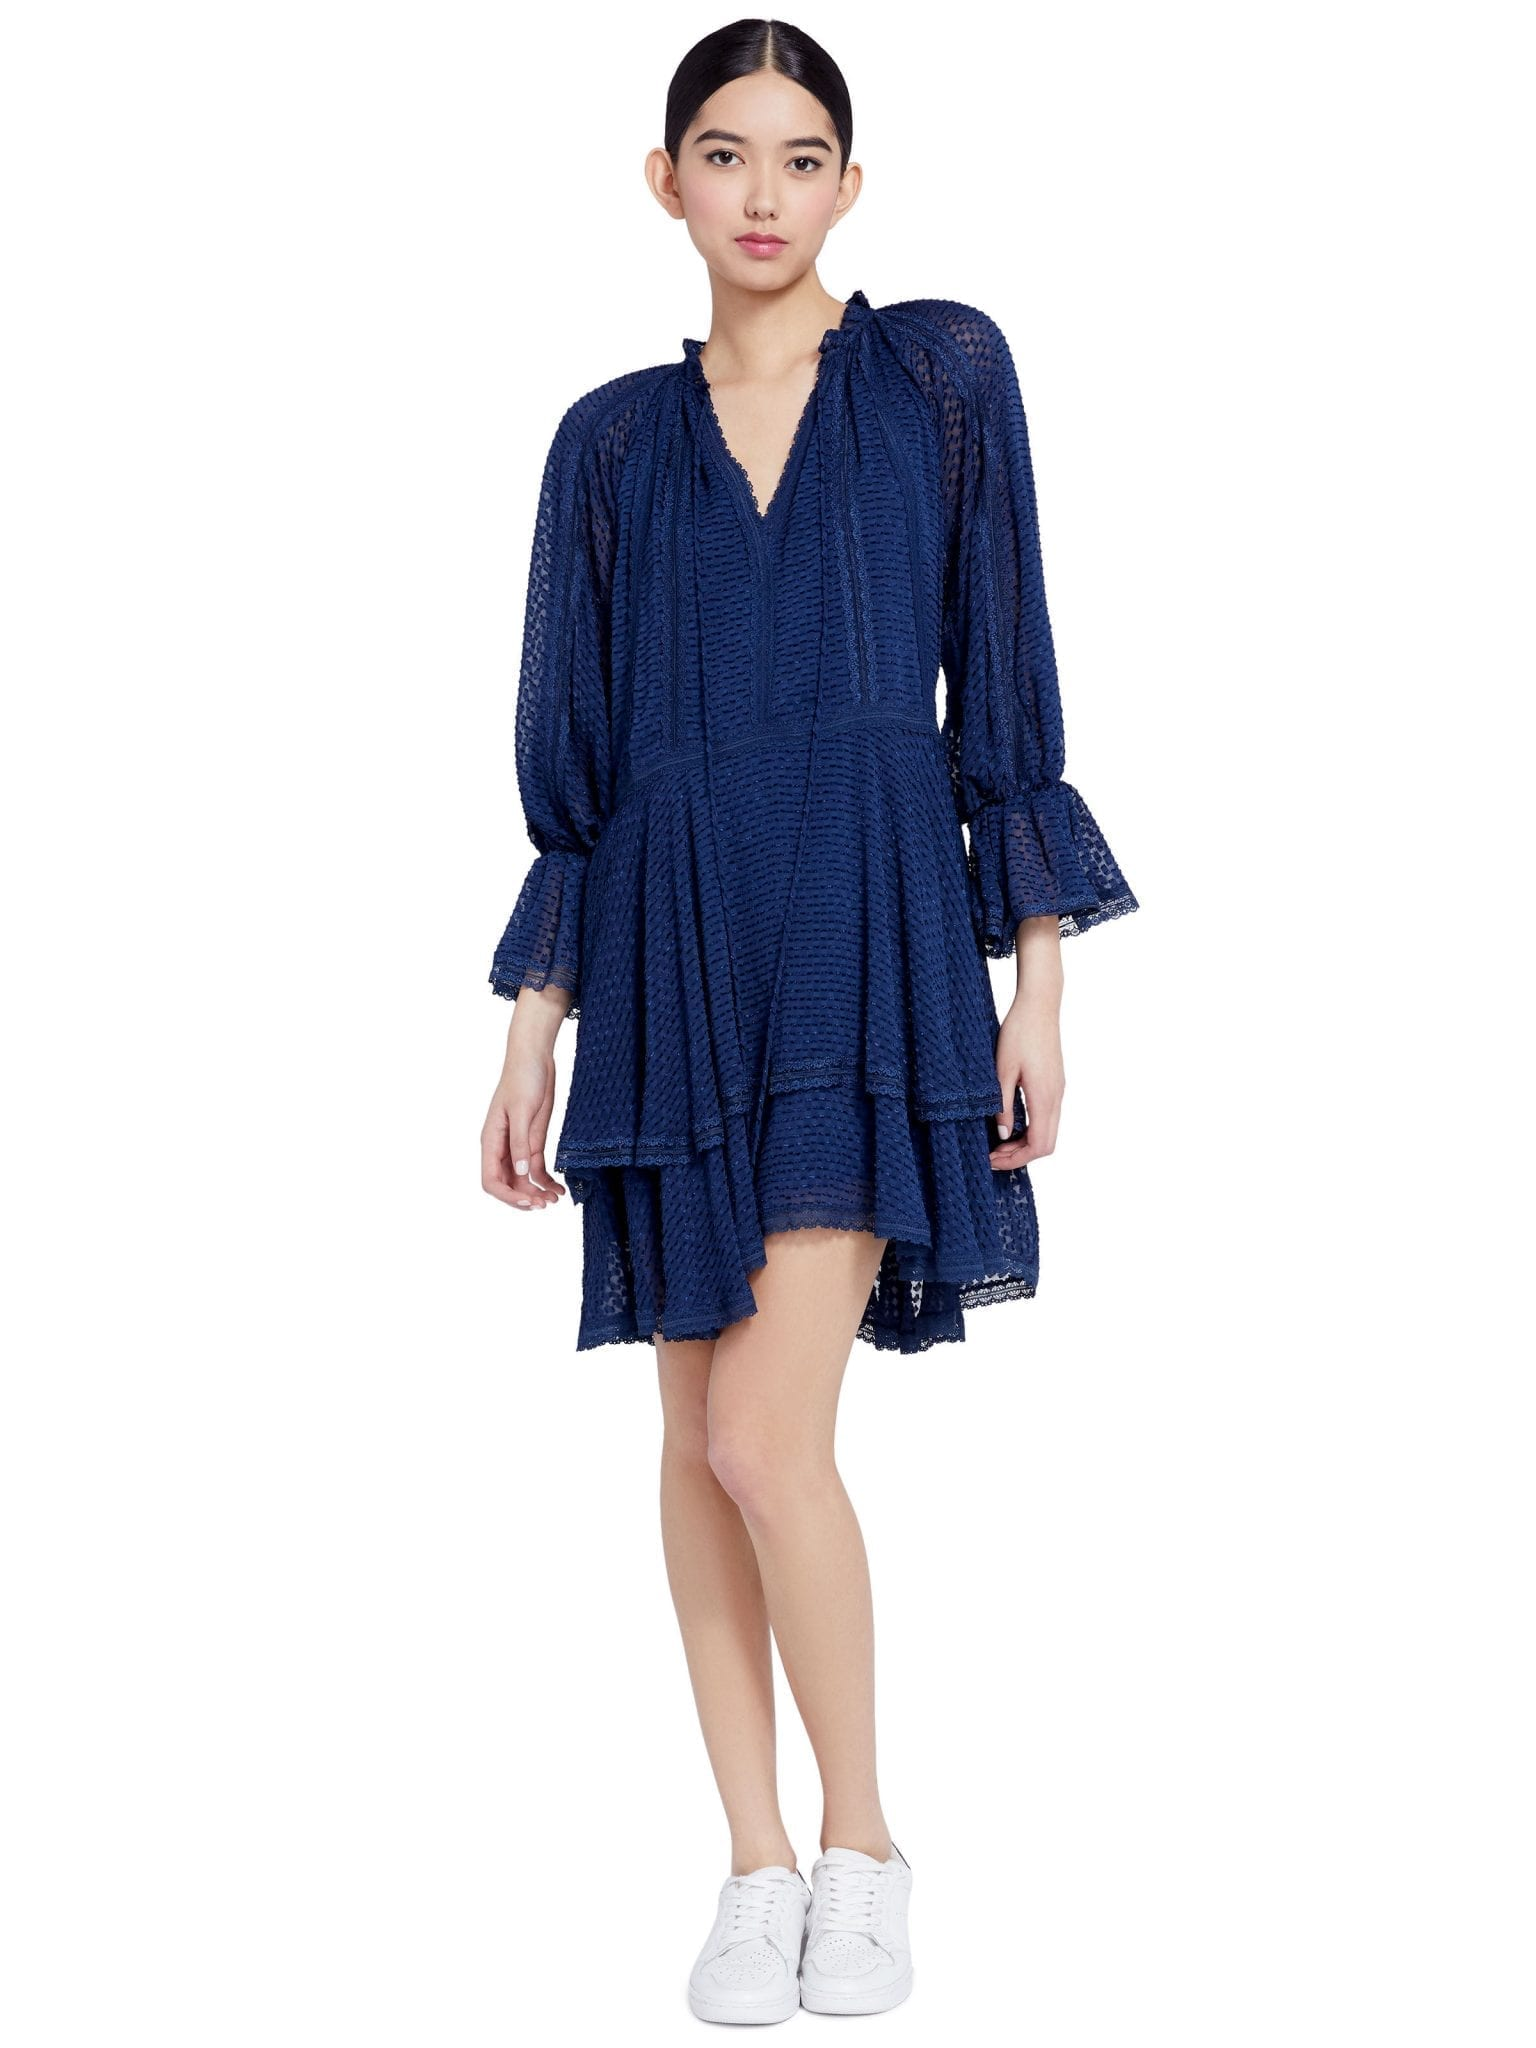 ALICE + OLIVIA Joanne Handkerchief Mini Dress